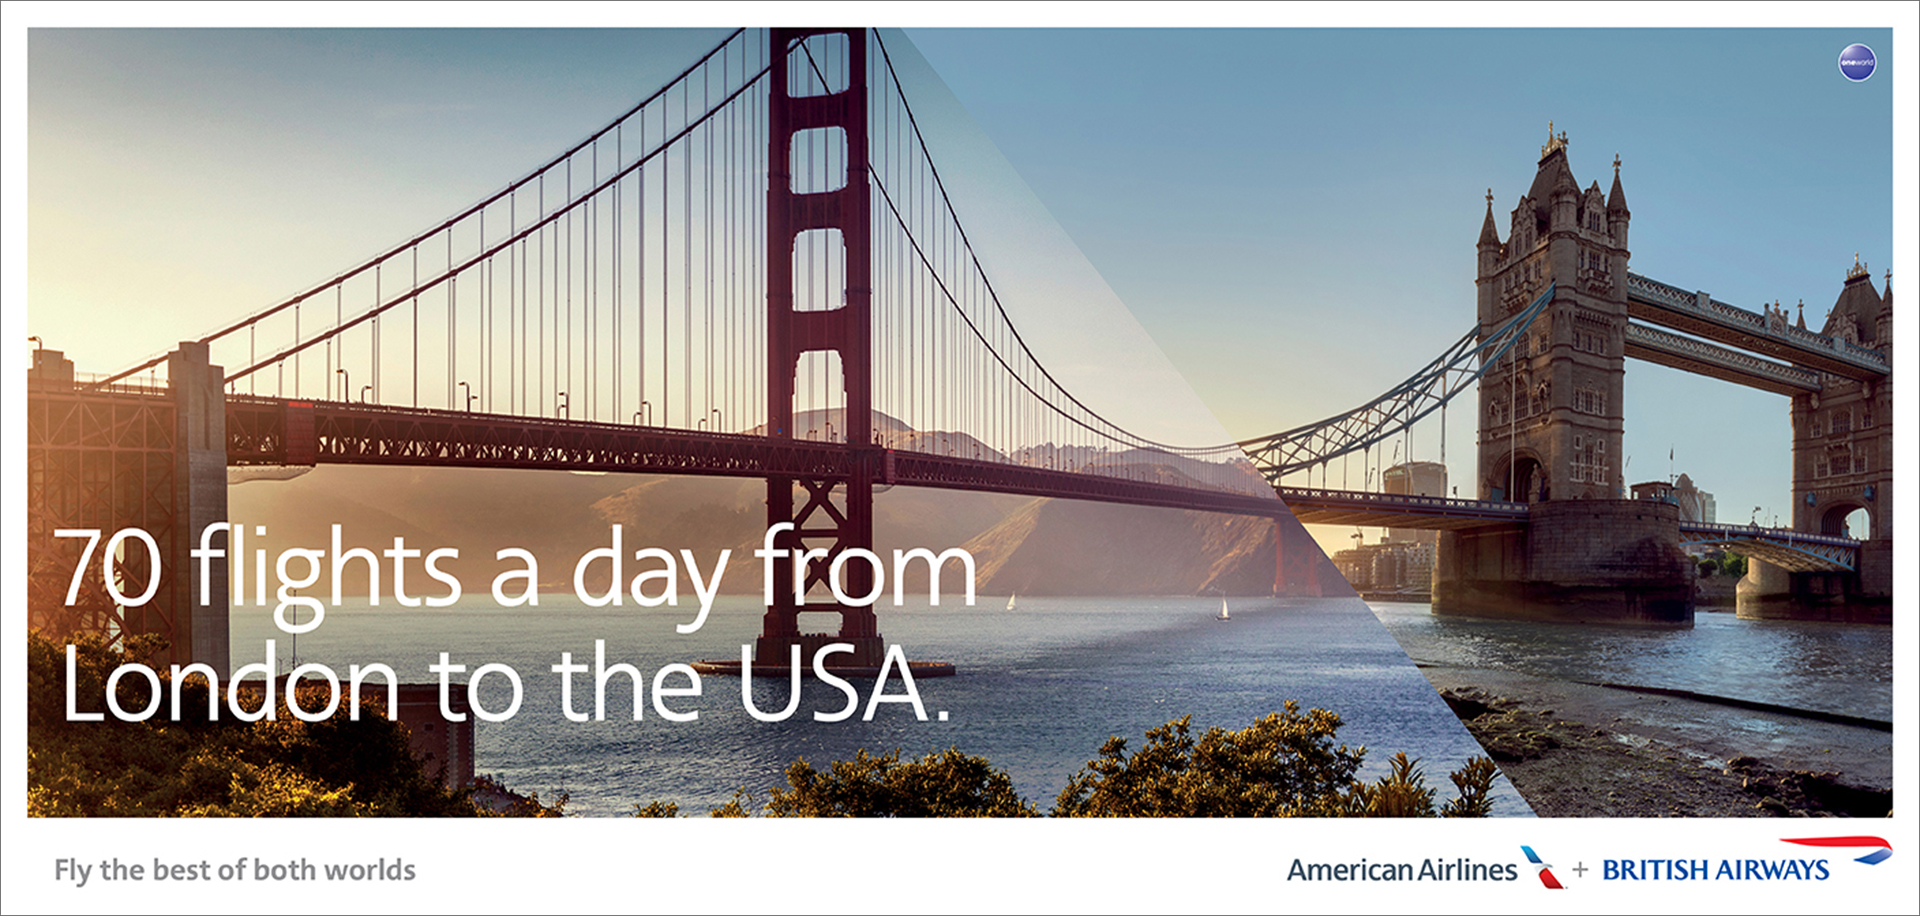 american-airlines-post-production-retouch